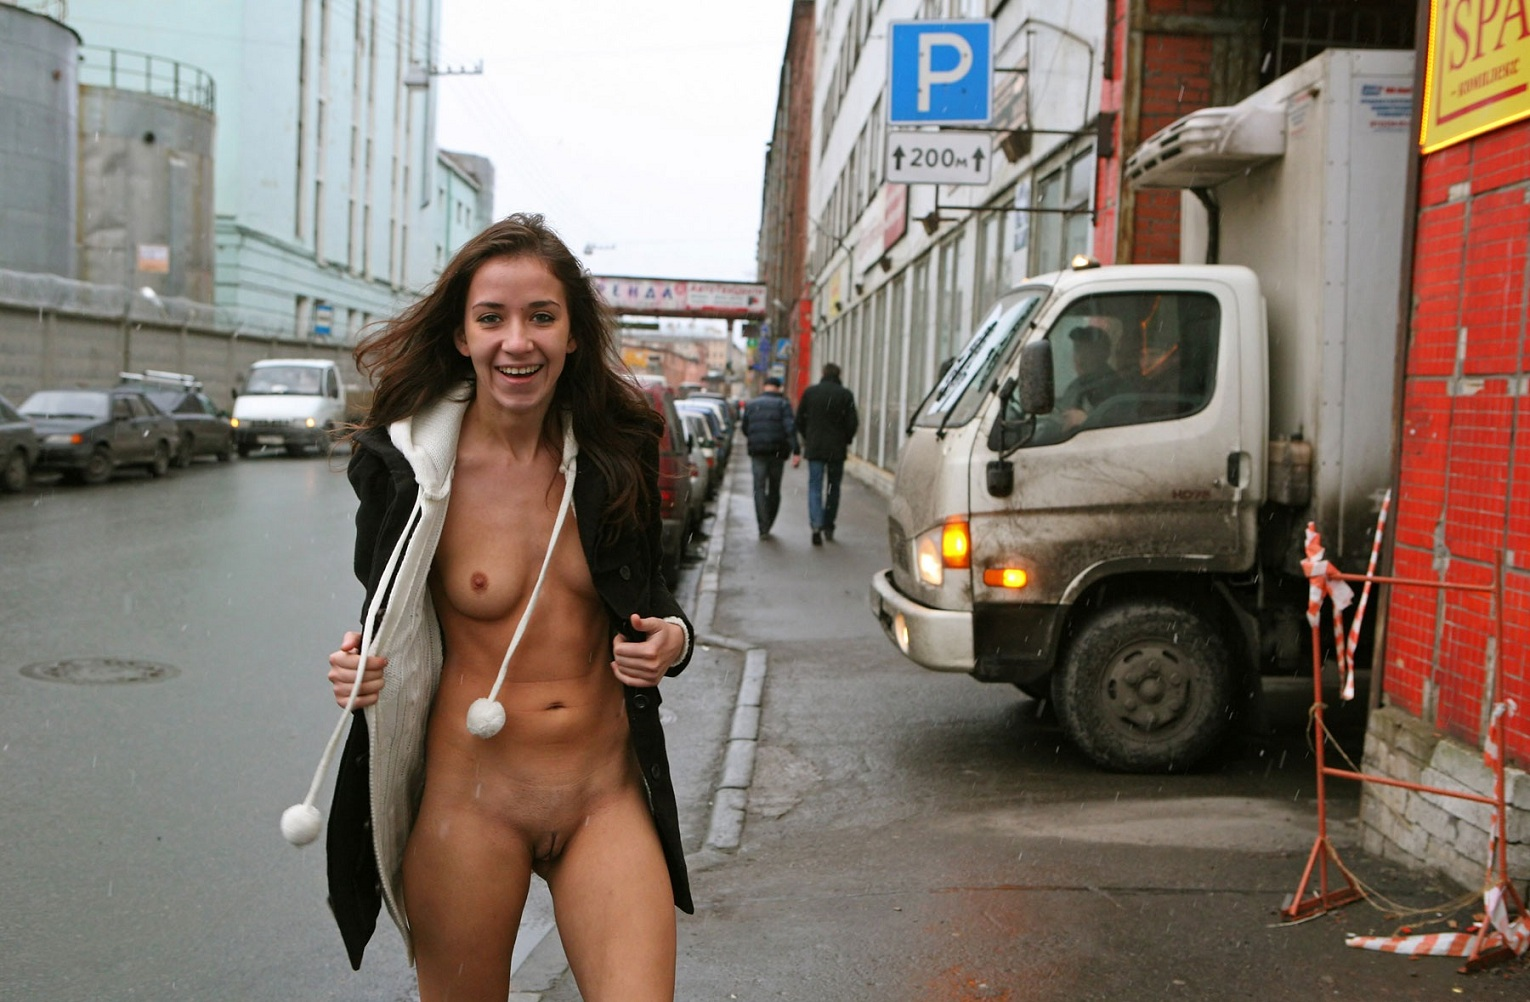 Young-chick-flashes-her-naked-body-on-the-street-2